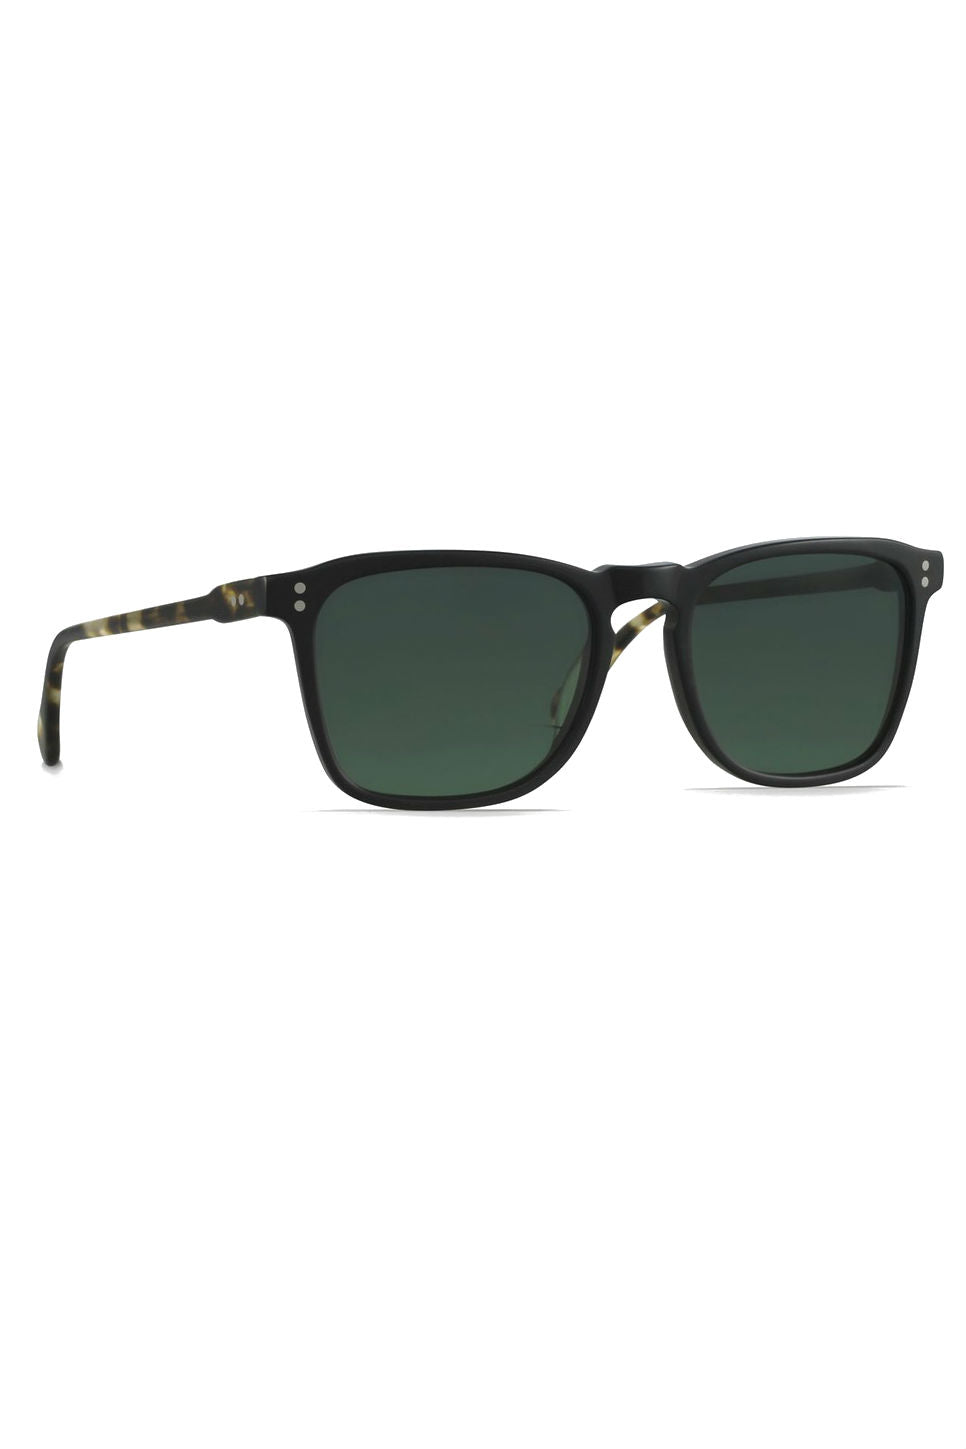 RAEN - Wiley - Matte Black + Matte Brindle Tortoise/Green Polar - Profile